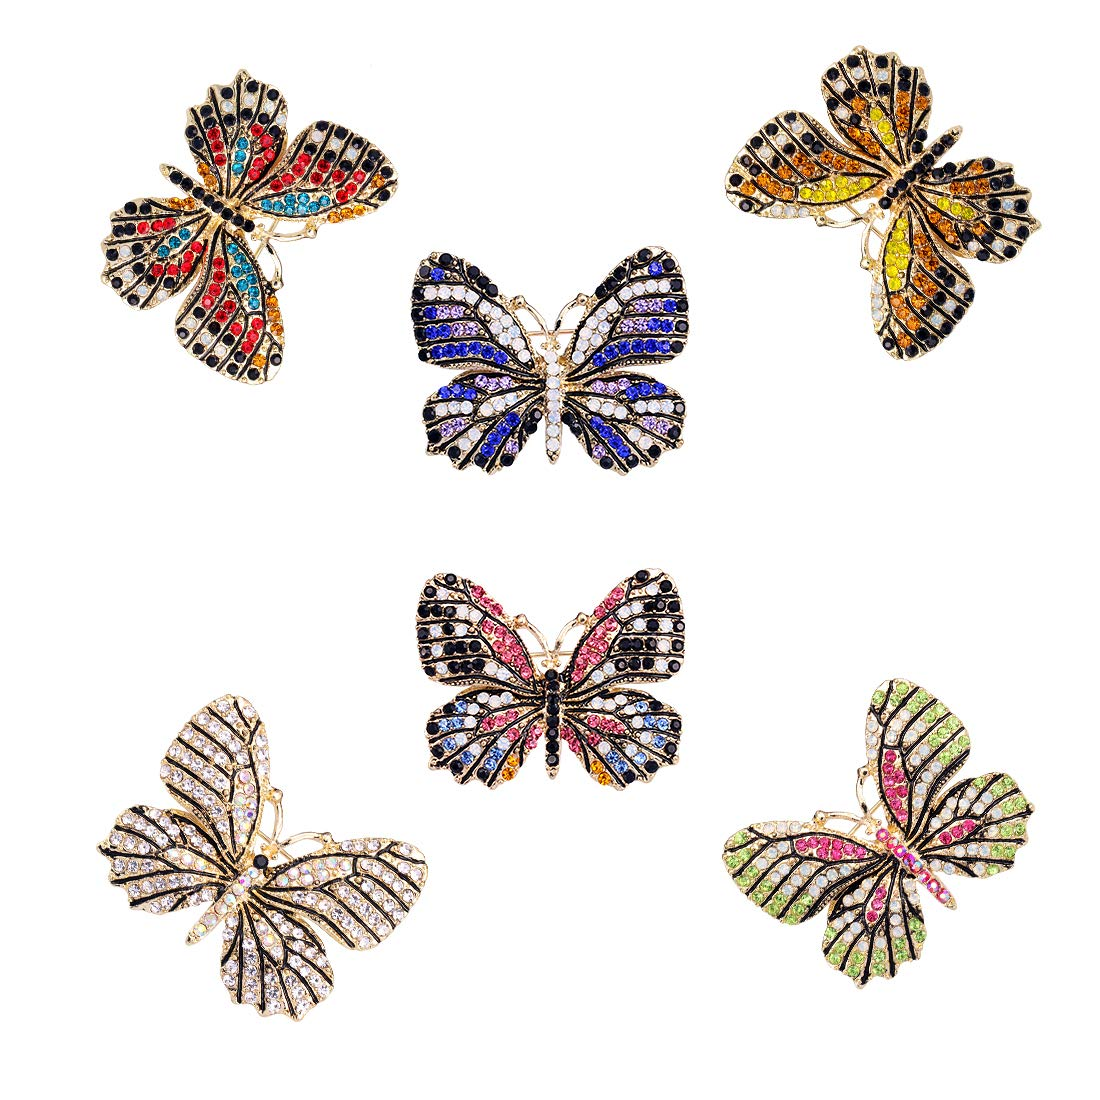 WeimanJewelry Lot6pcs Multicolor Rhinestone Crystal Butterfly Brooch Pin Set for Women by WeimanJewelry (Image #2)